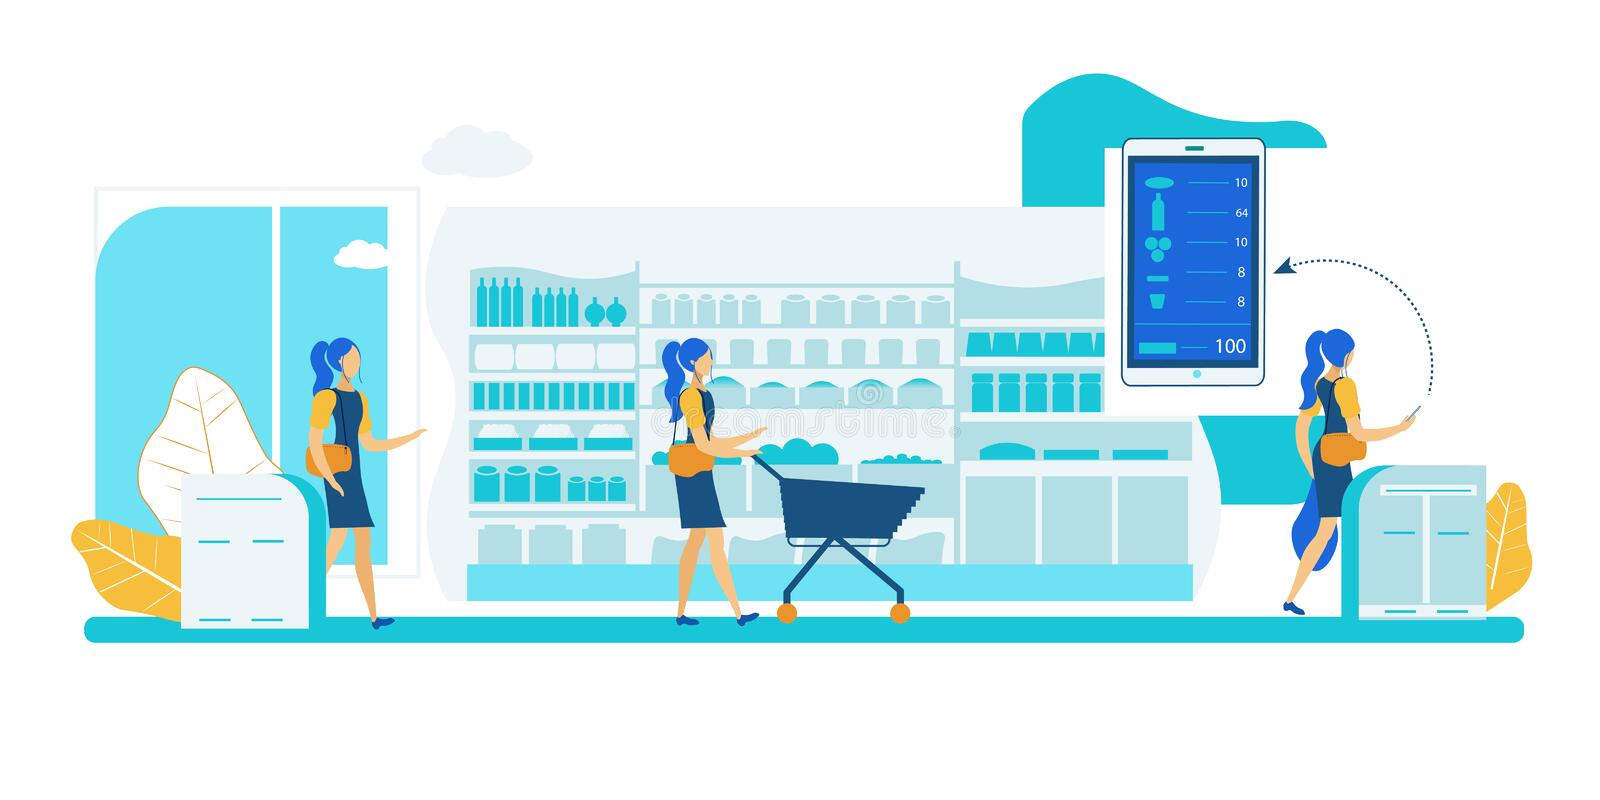 Self Service Store. Smart Shelf Vision Technology. Self Service App Checkout Store. Smart Shelf Sensor Vision Technology. Automatic Purchase Detection and stock illustration